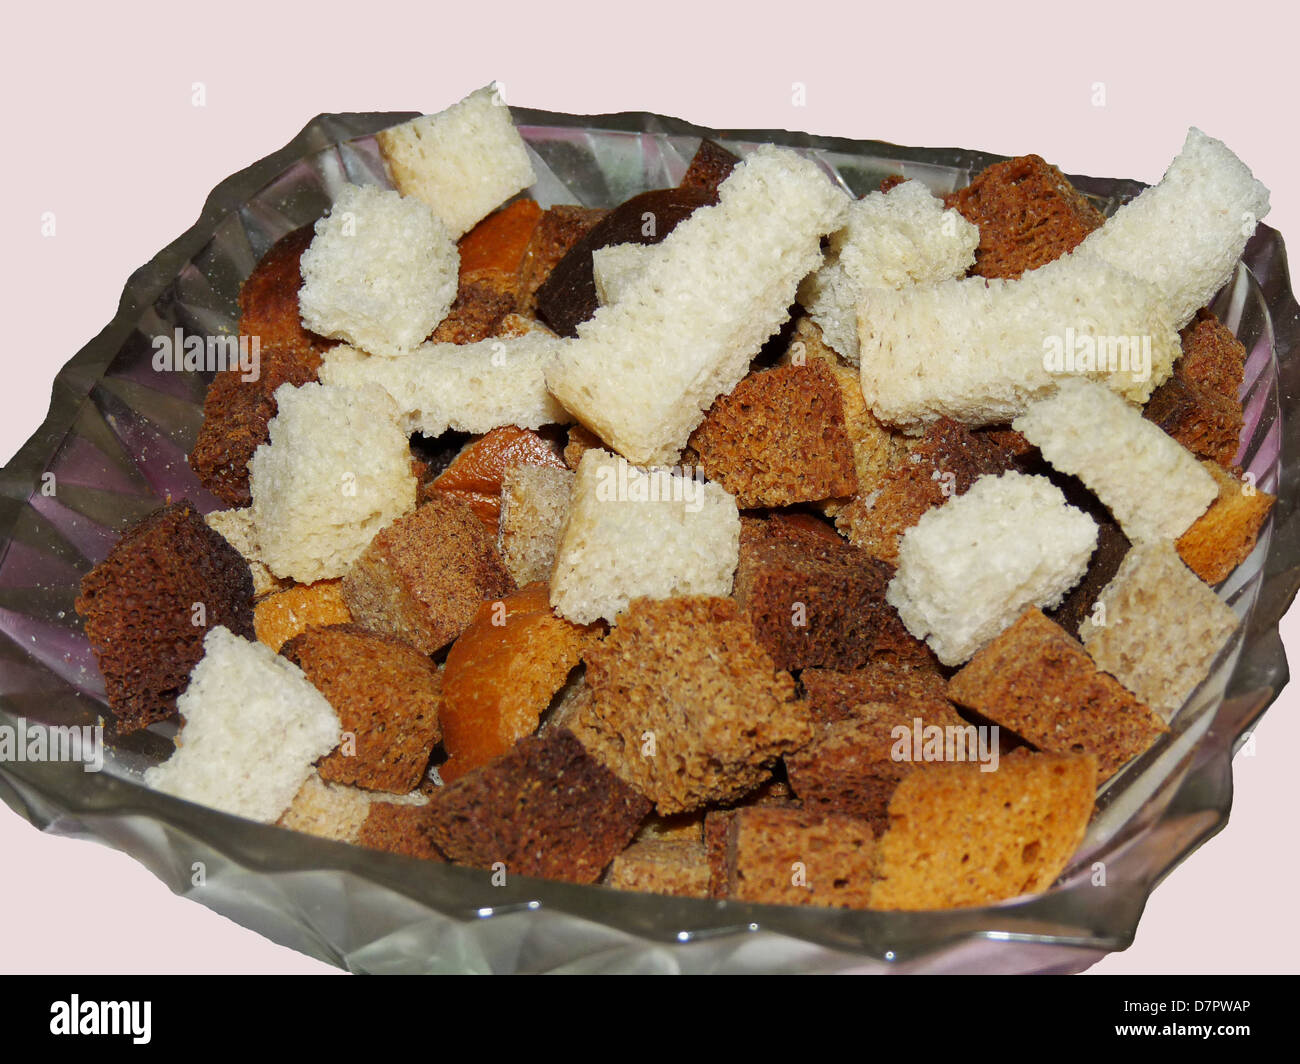 crackers, bread, bowl, food, carbohydrates, diet, white, black, crispy, tasty - Stock Image